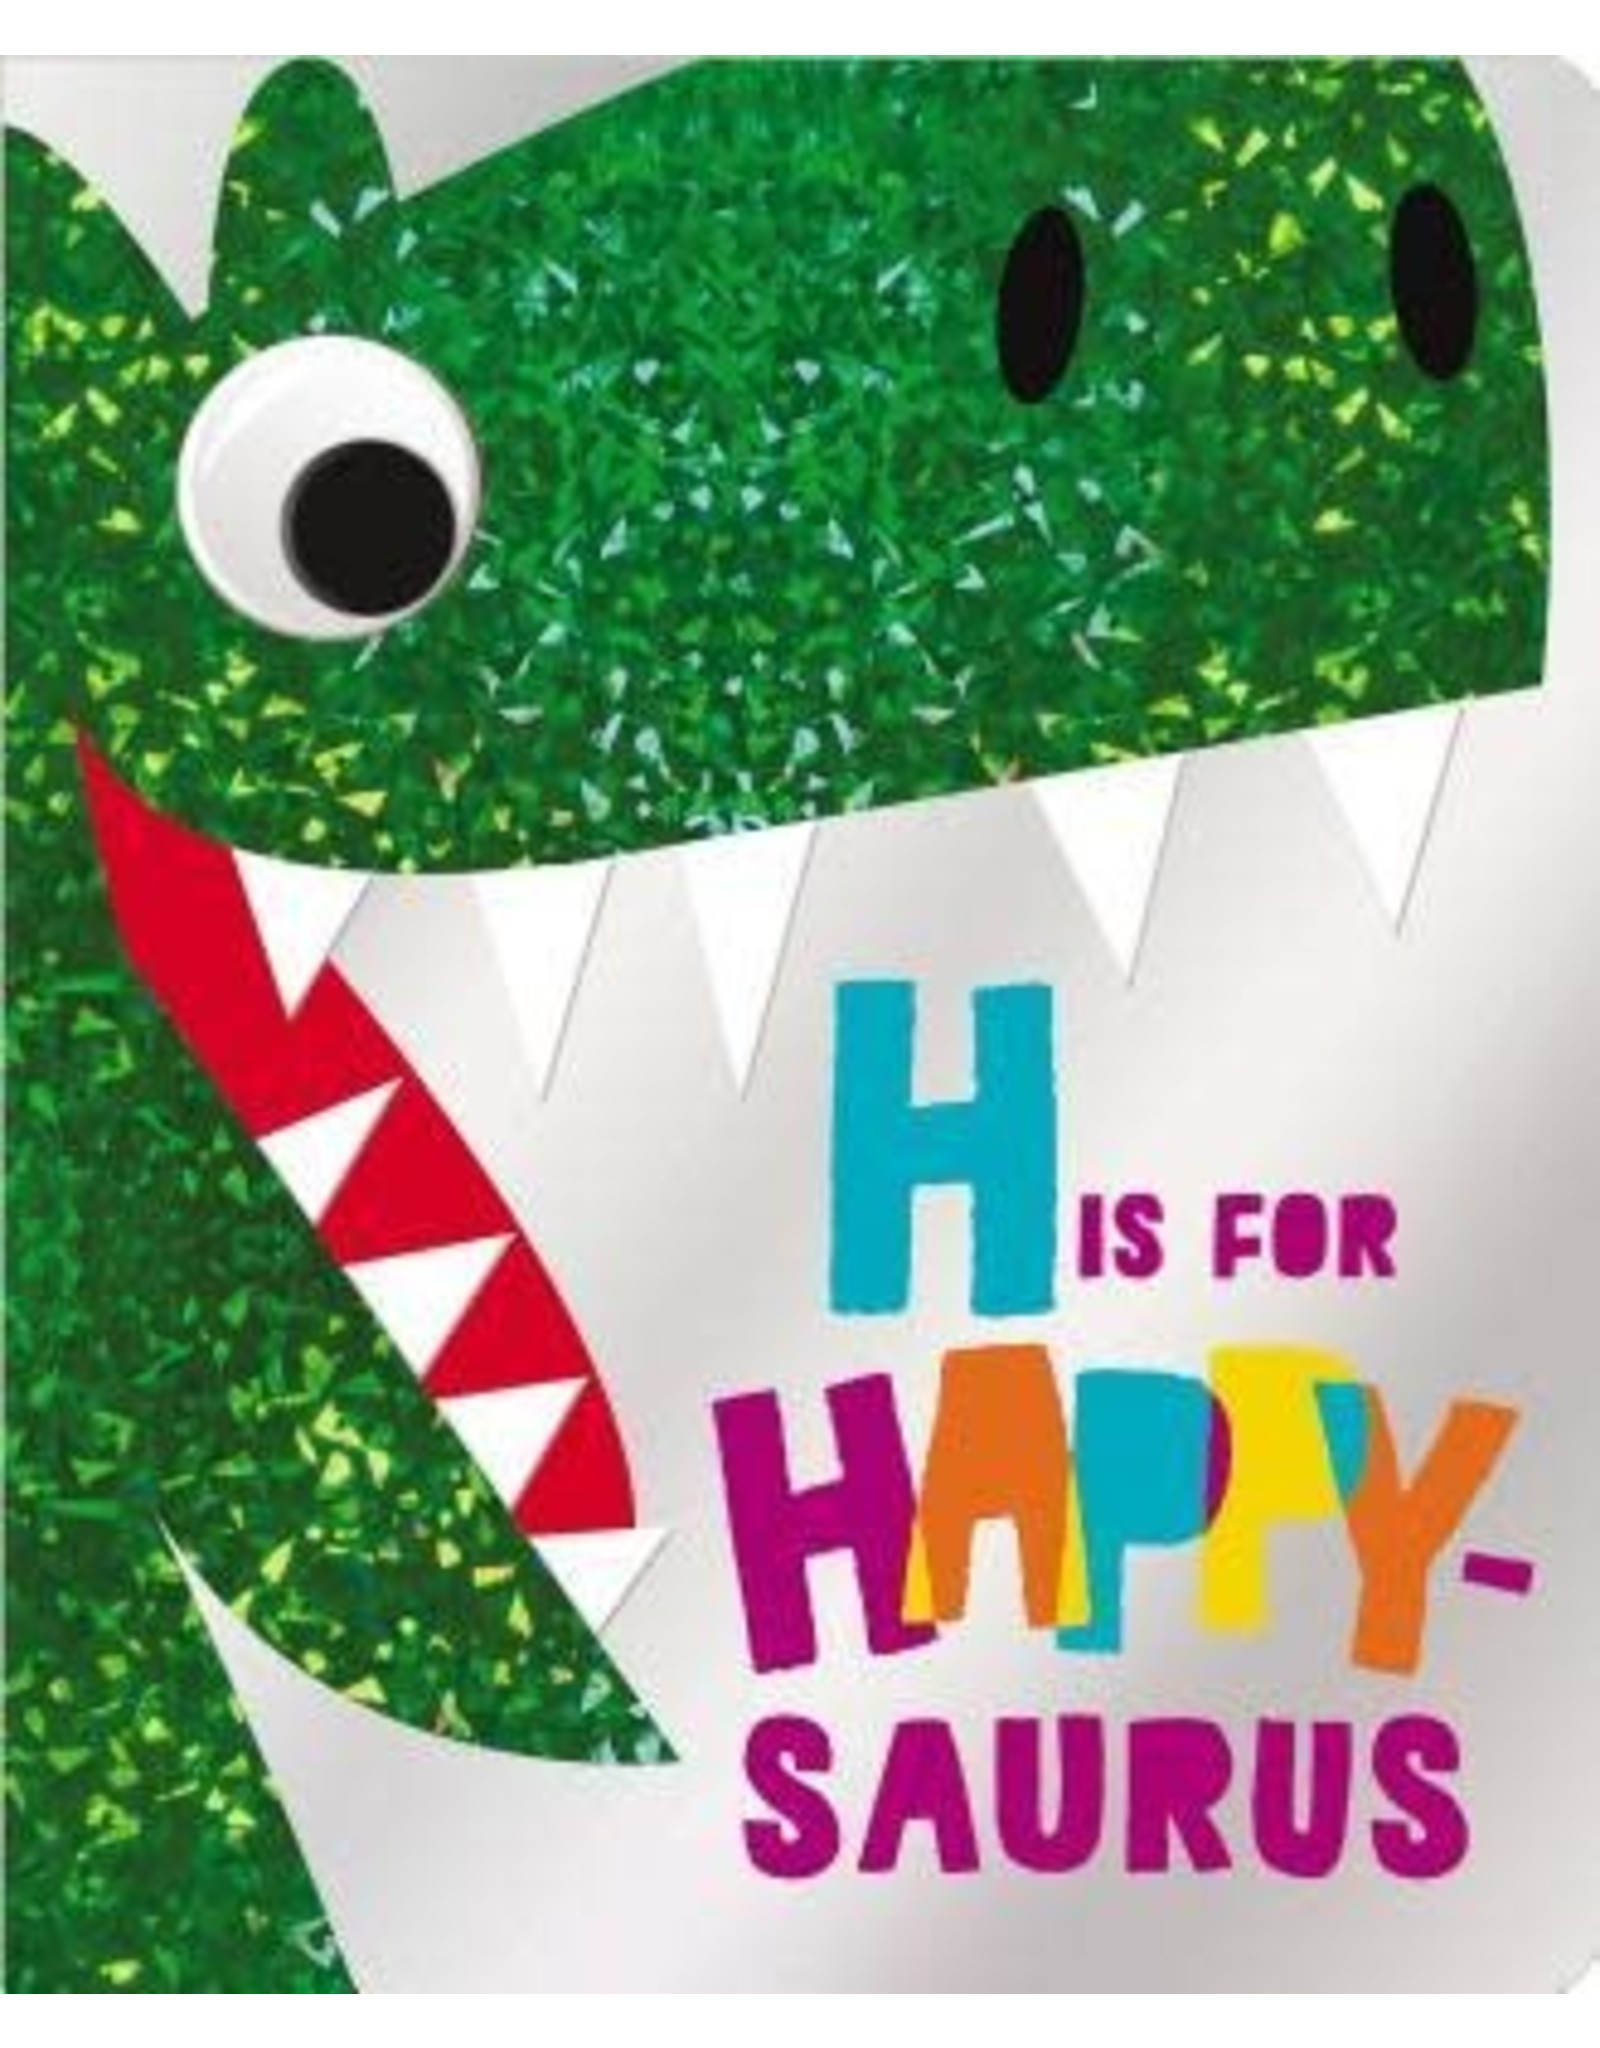 H is for Happy-saurus BB